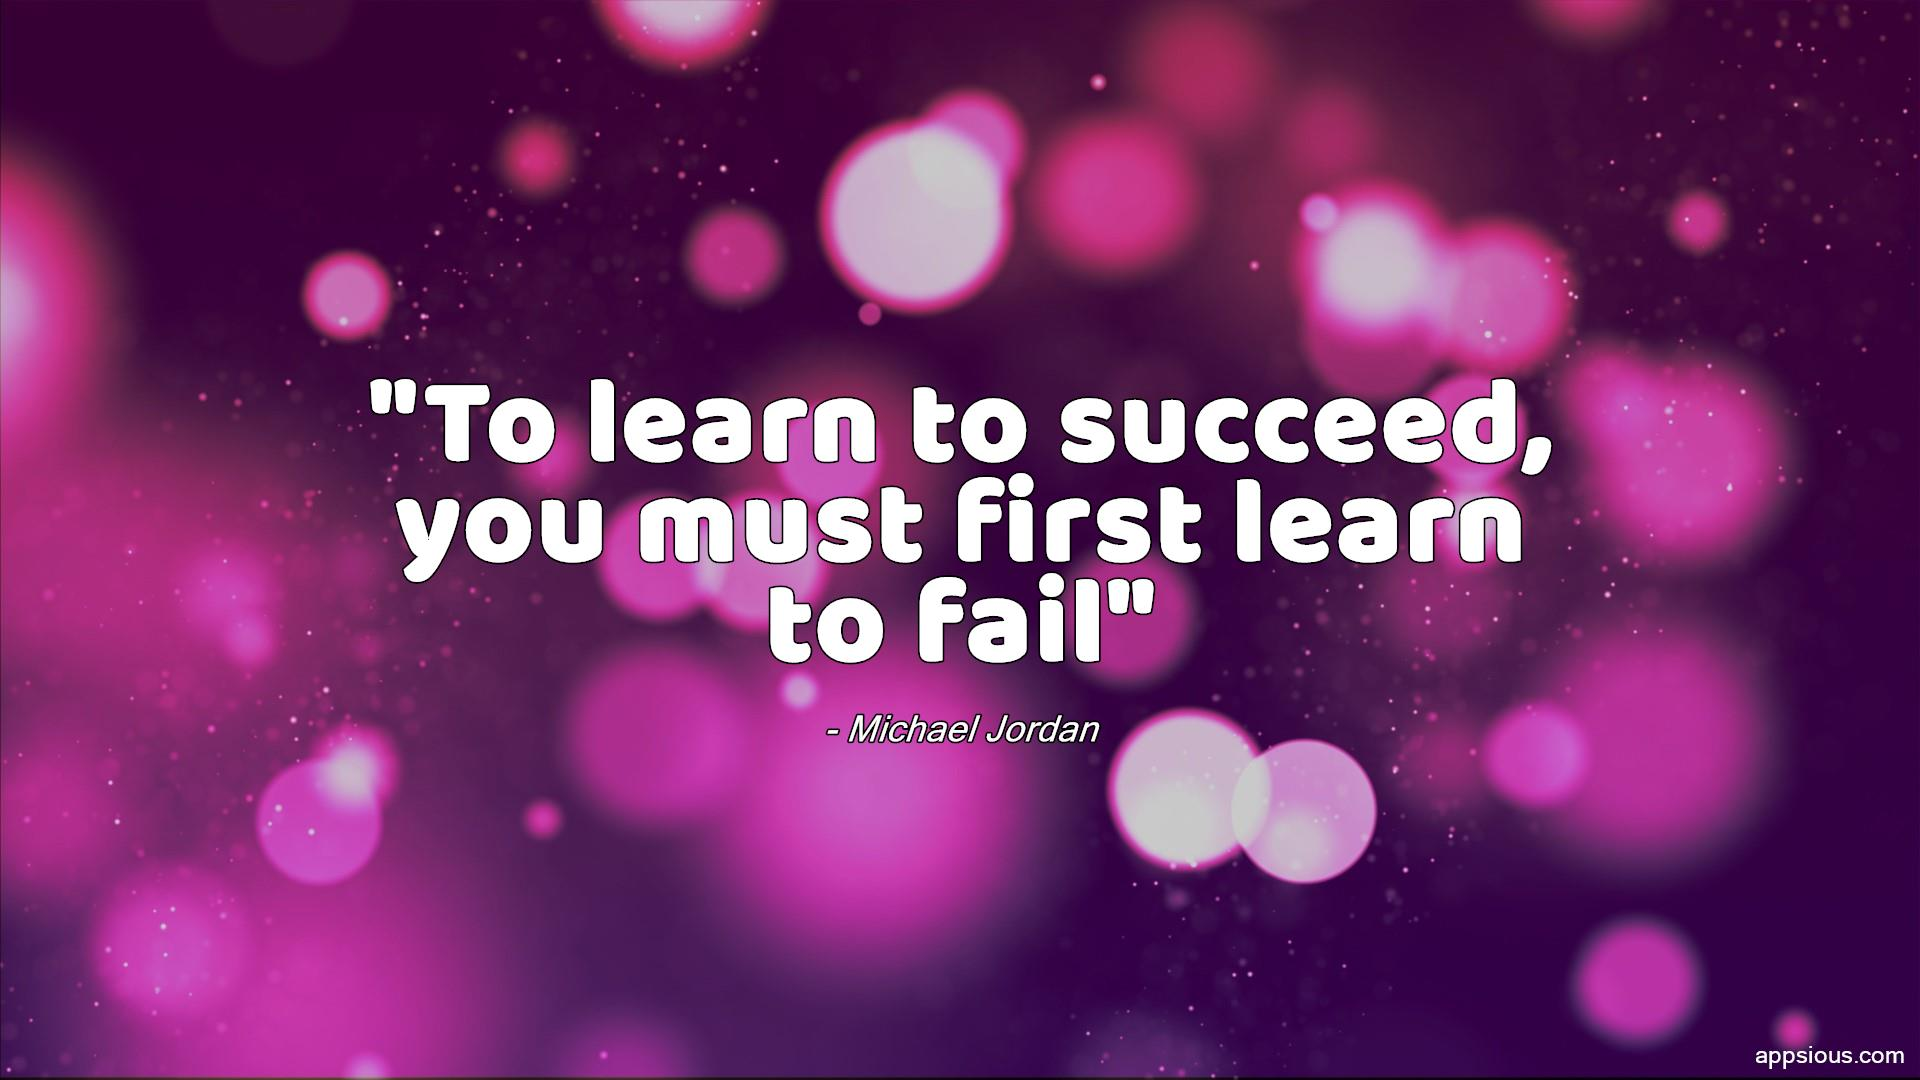 To learn to succeed, you must first learn to fail